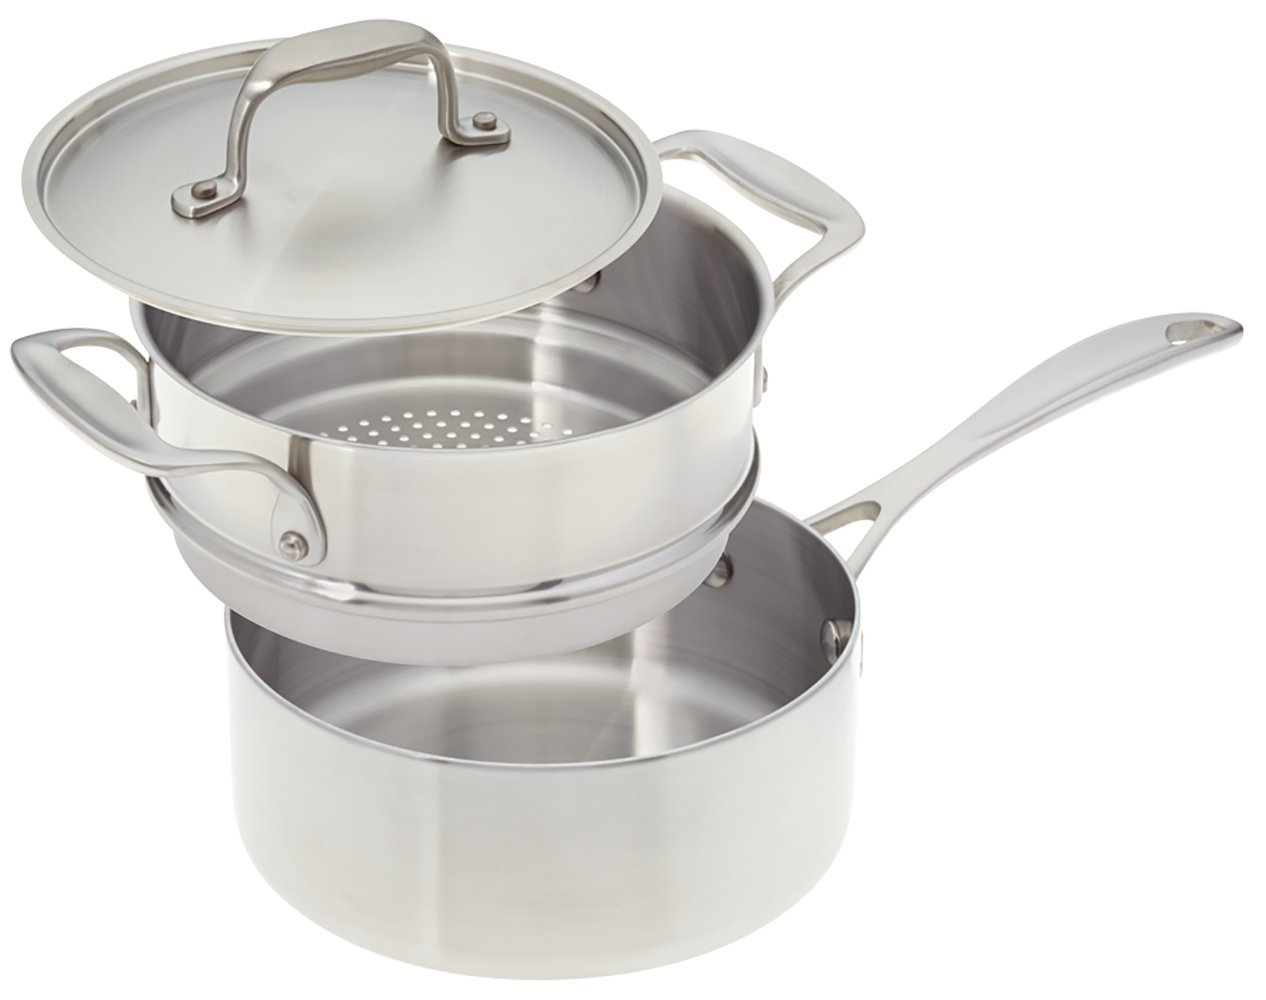 American Kitchen - 2-quart Premium Stainless Steel Saucepan with Steamer Insert and Cover